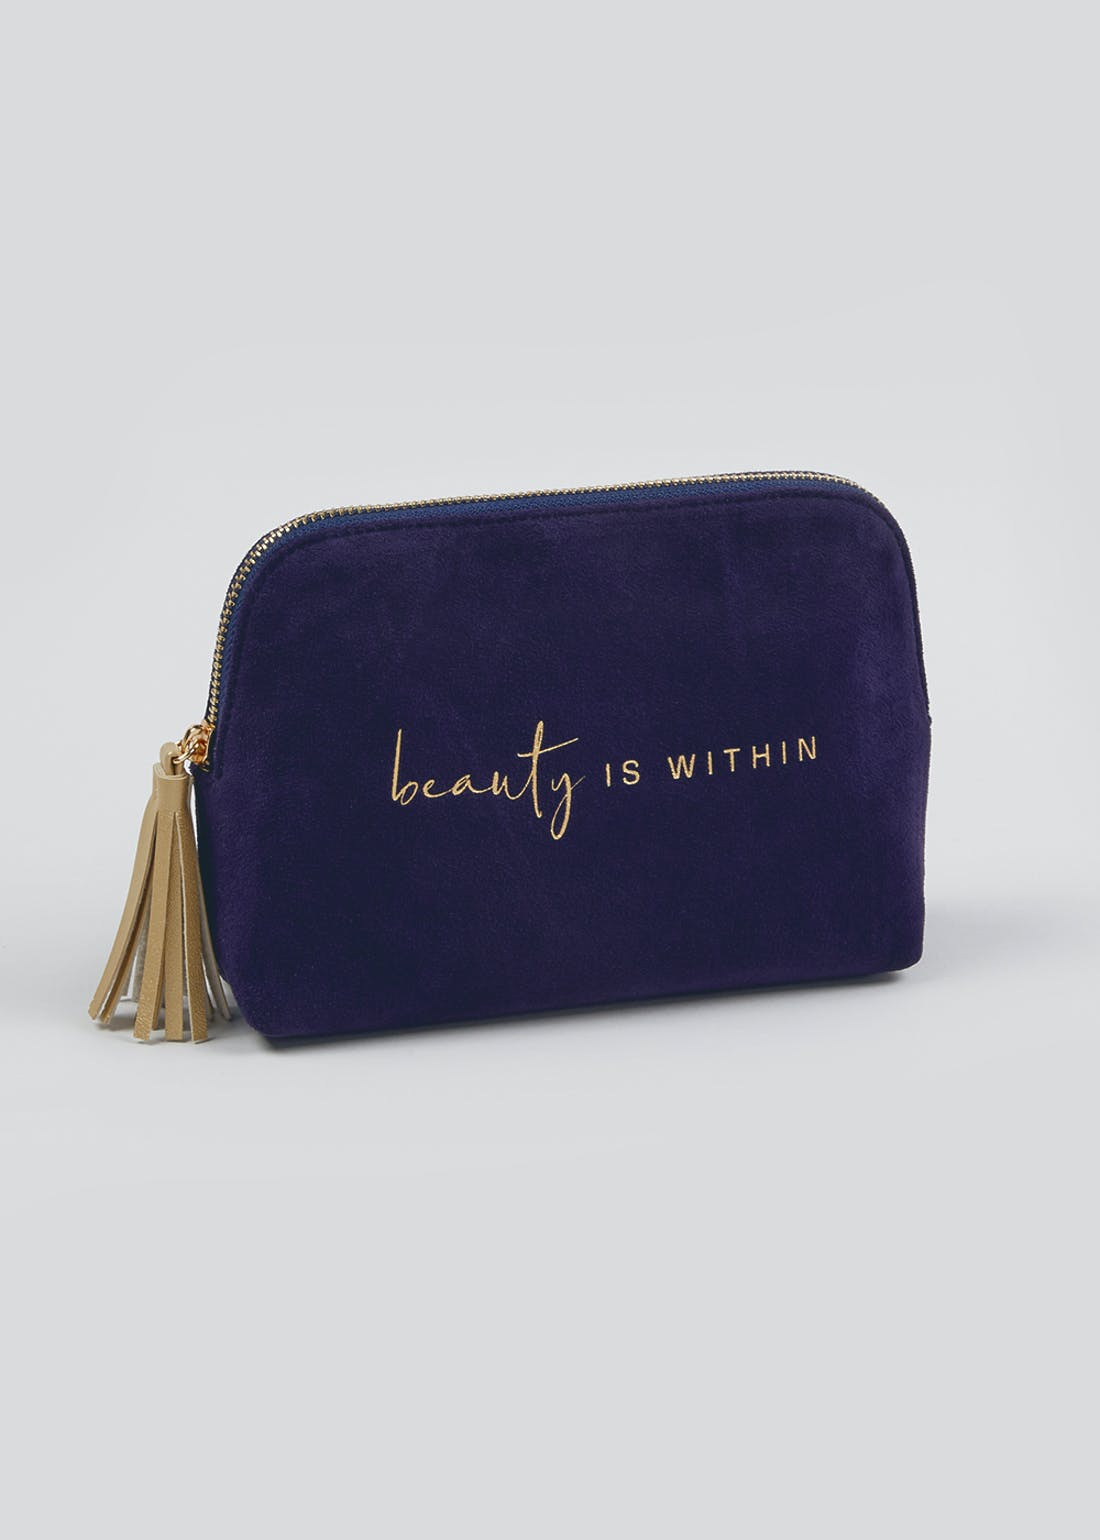 Beauty is Within Make Up Bag (20cm x 14.5cm x 6cm)